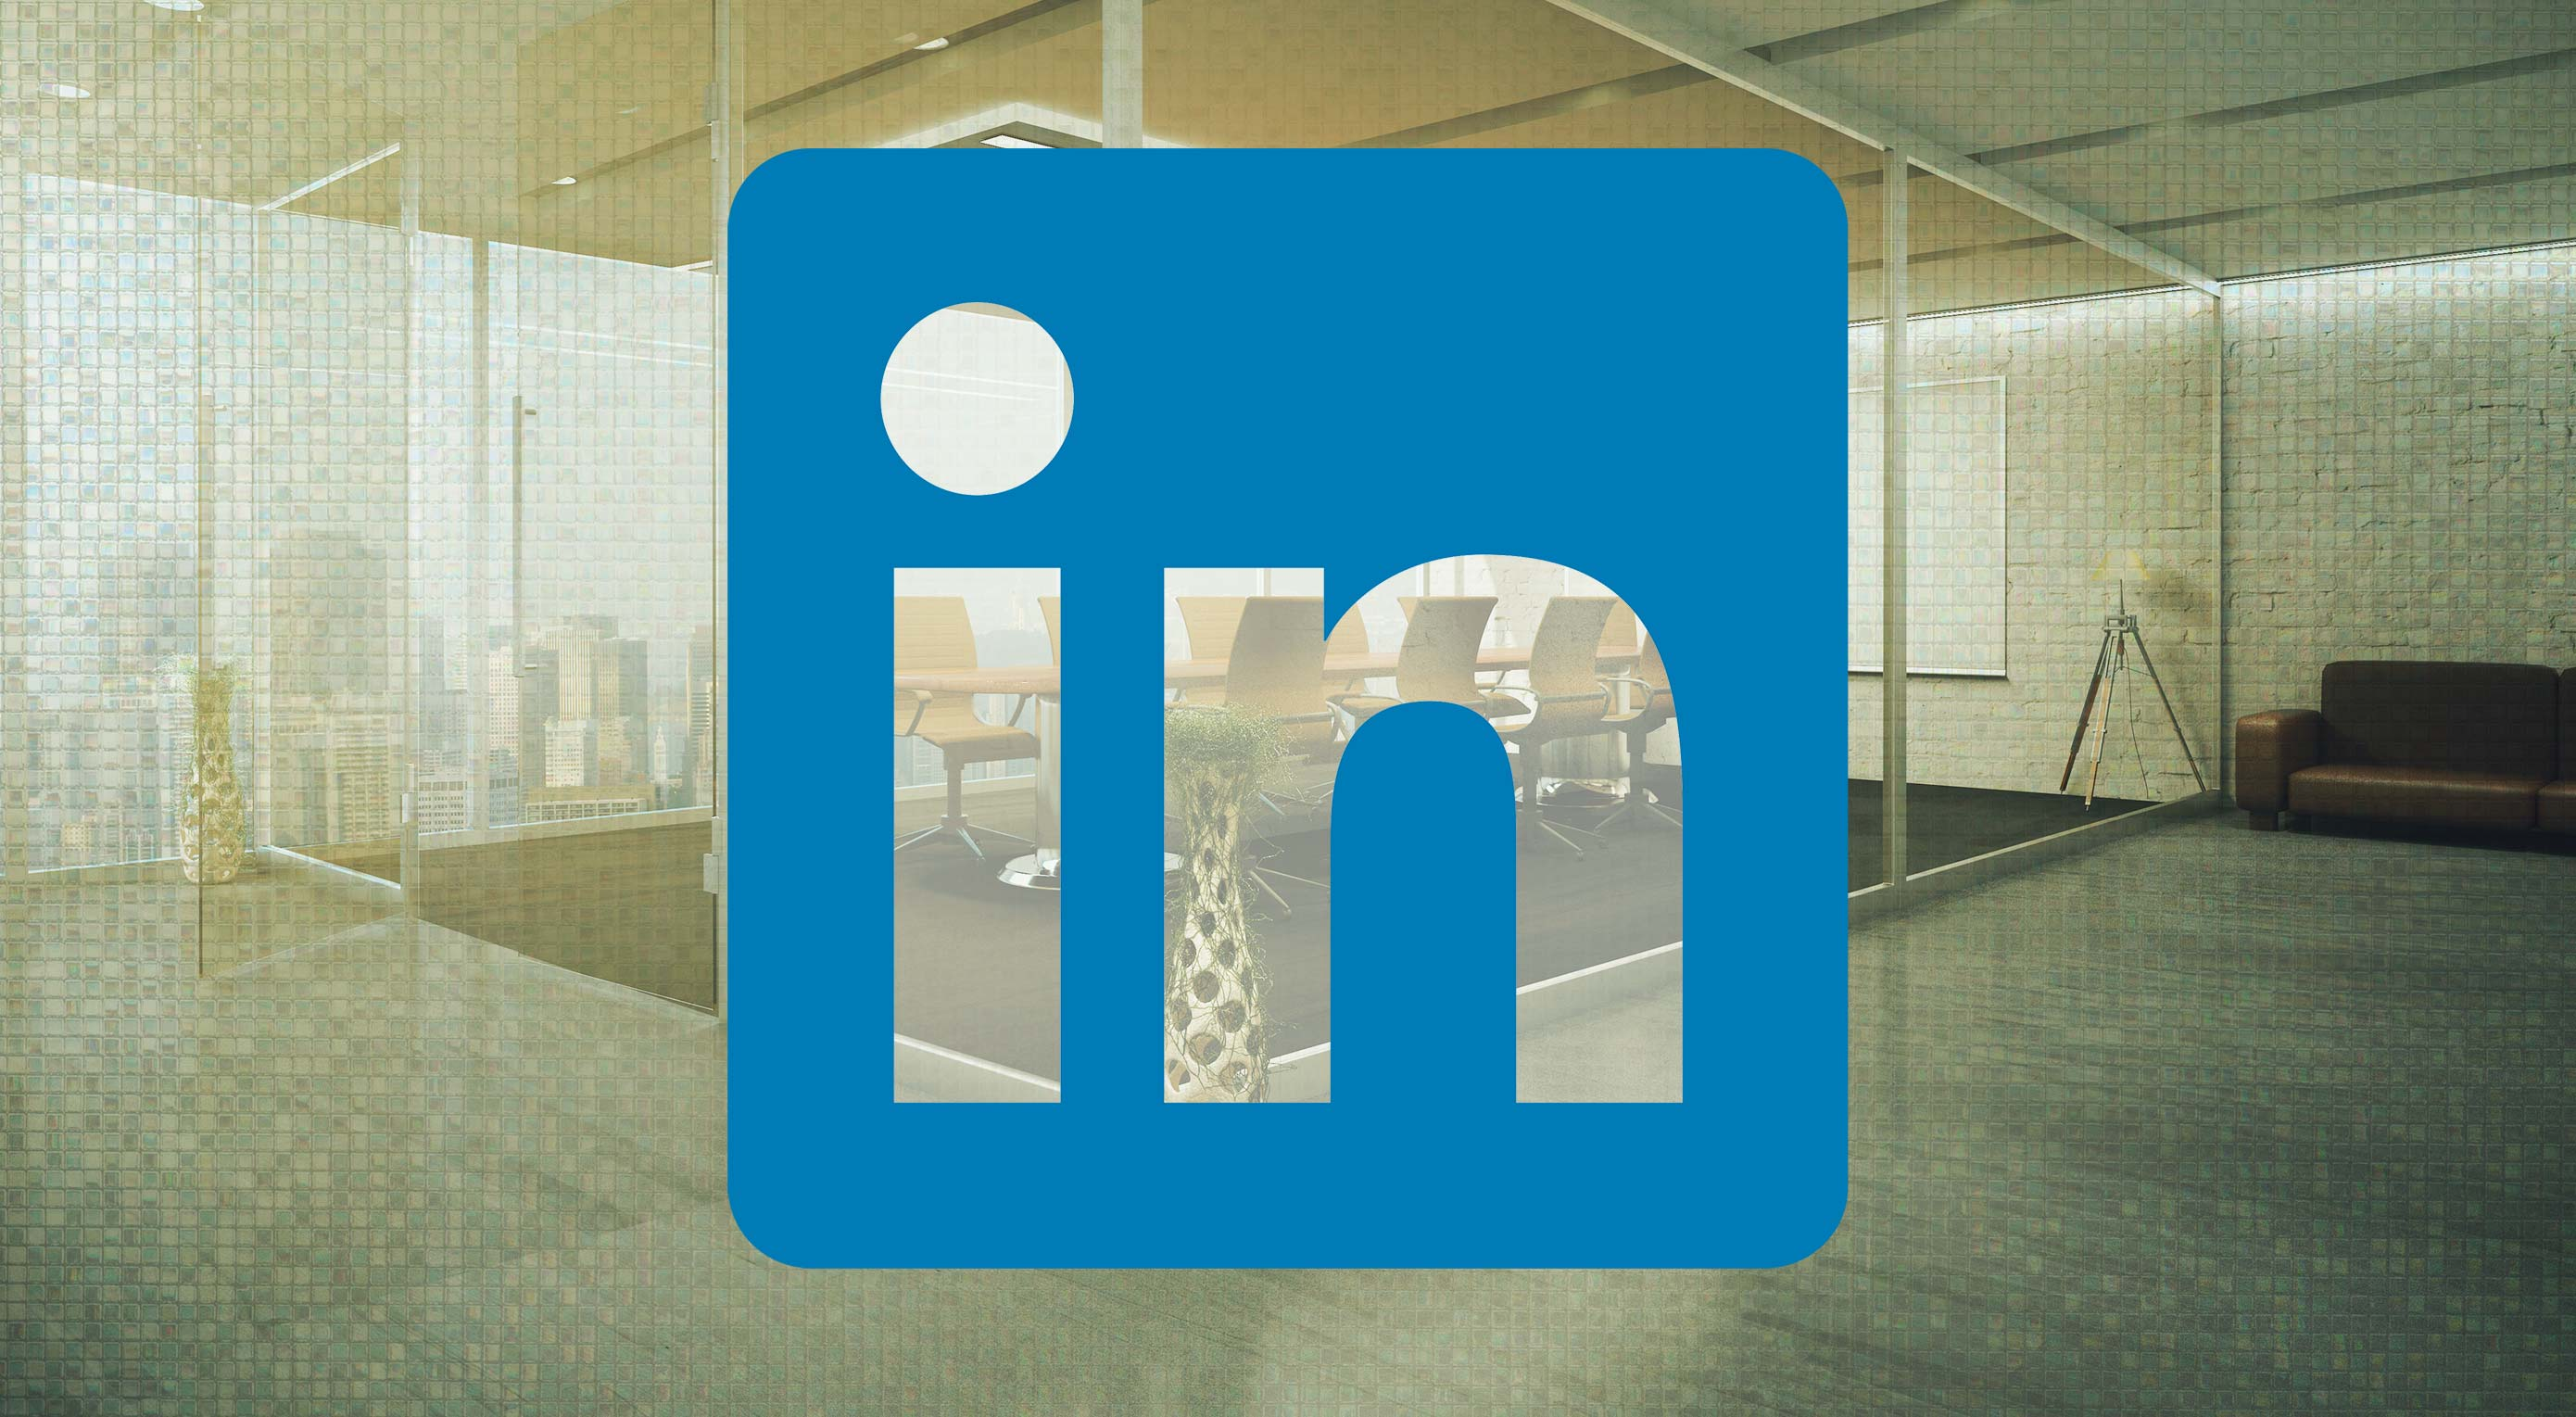 Microsoft buys LinkedIn: What it means for designers